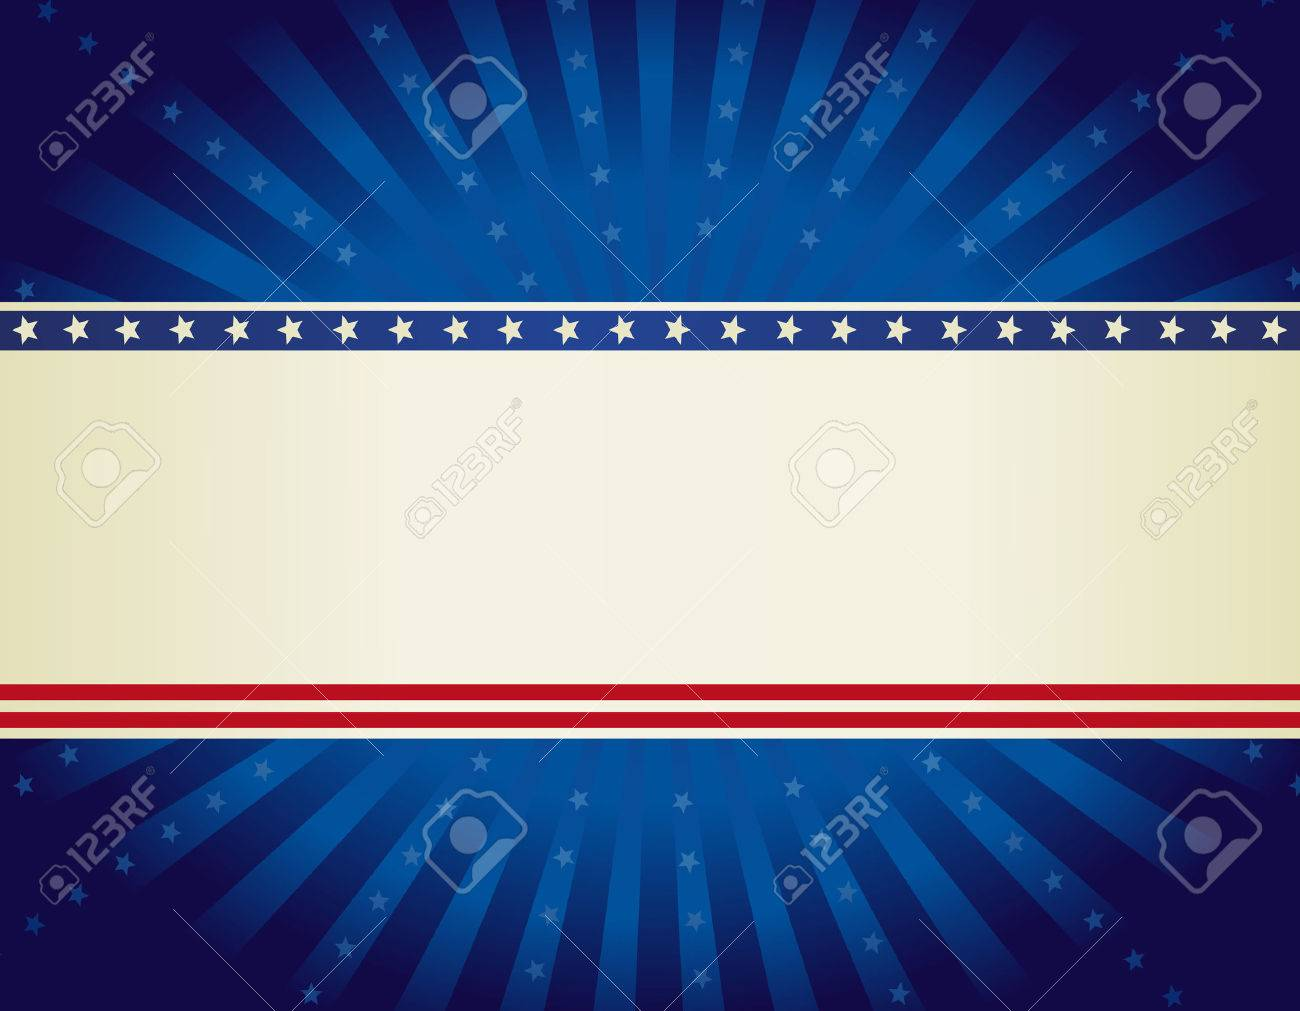 USA patriotic 4 th of july background design wth stars and stripes with starburst - 38908603